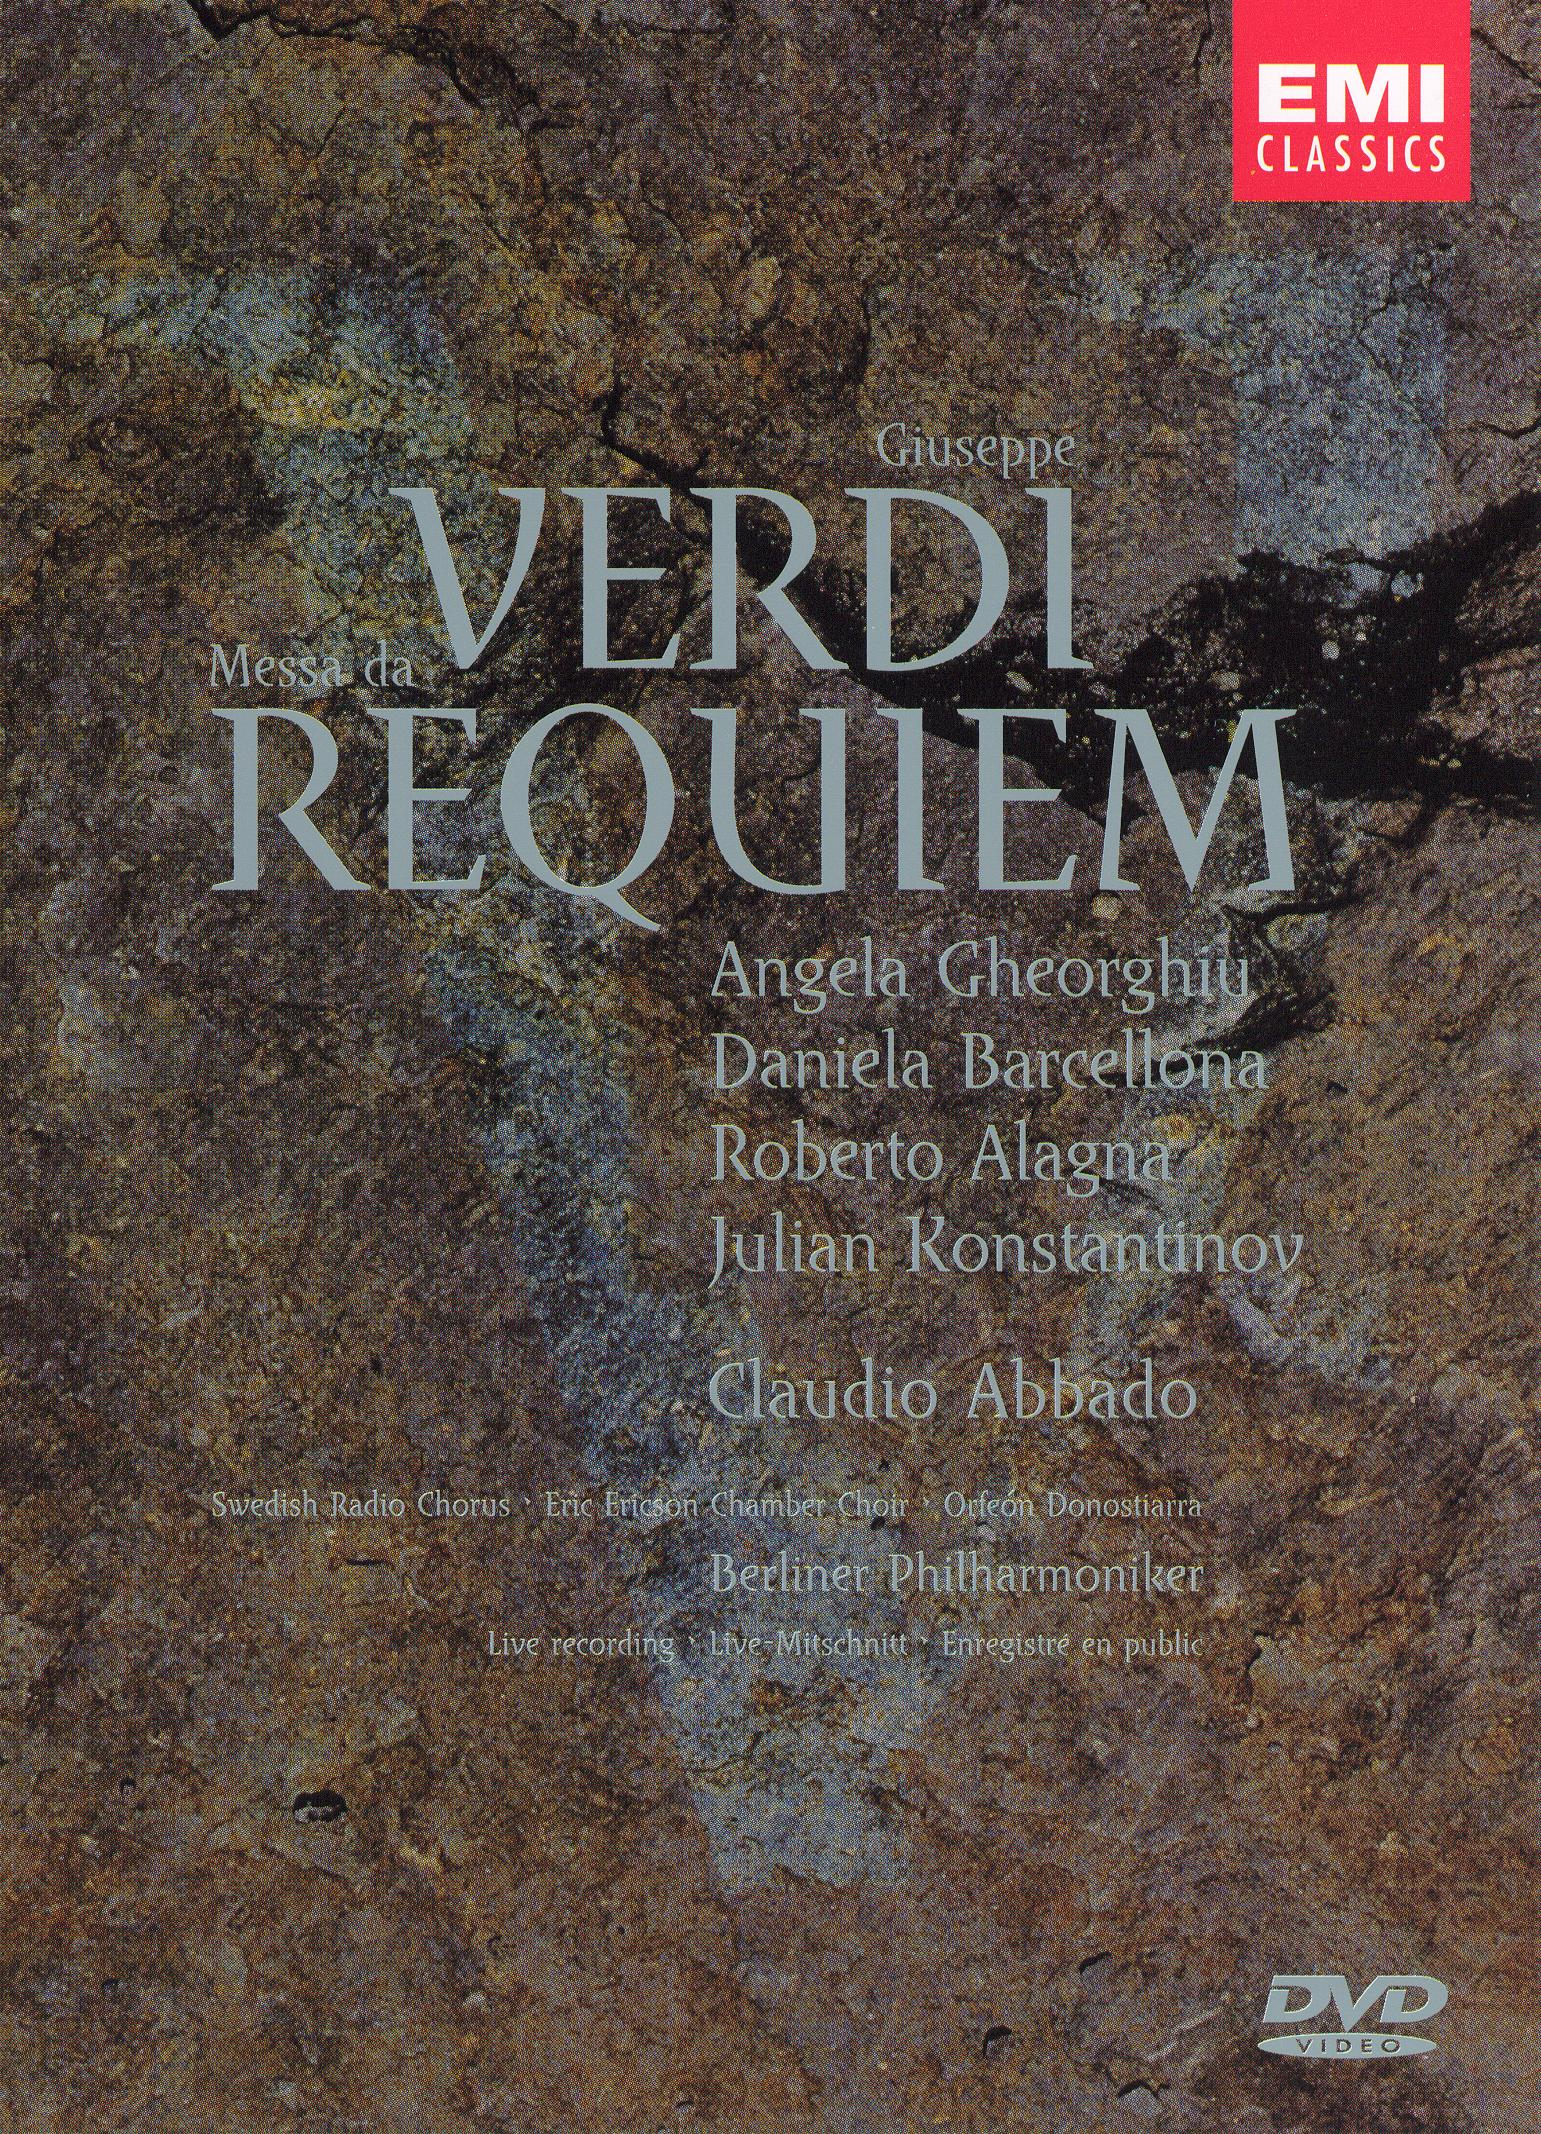 Berliner Philharmoniker/Claudio Abbado: Verdi - Messa da Requiem